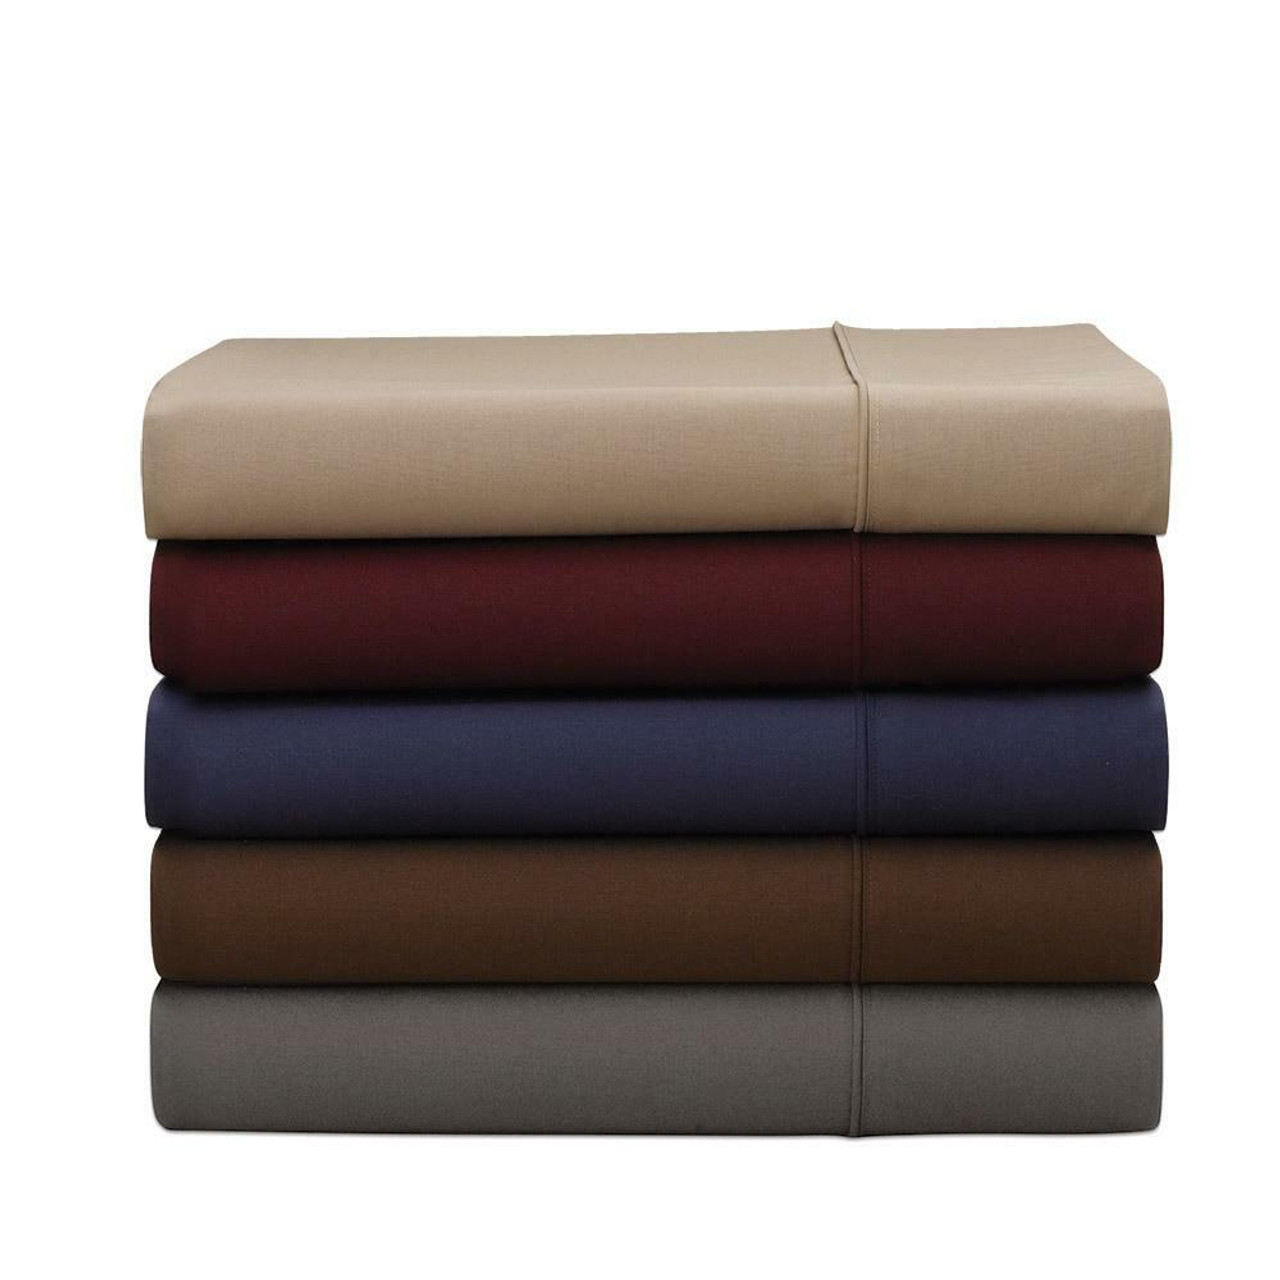 WestPoint/Martex Martex Colors Sheets by WestPoint Hospitality - All Sizes